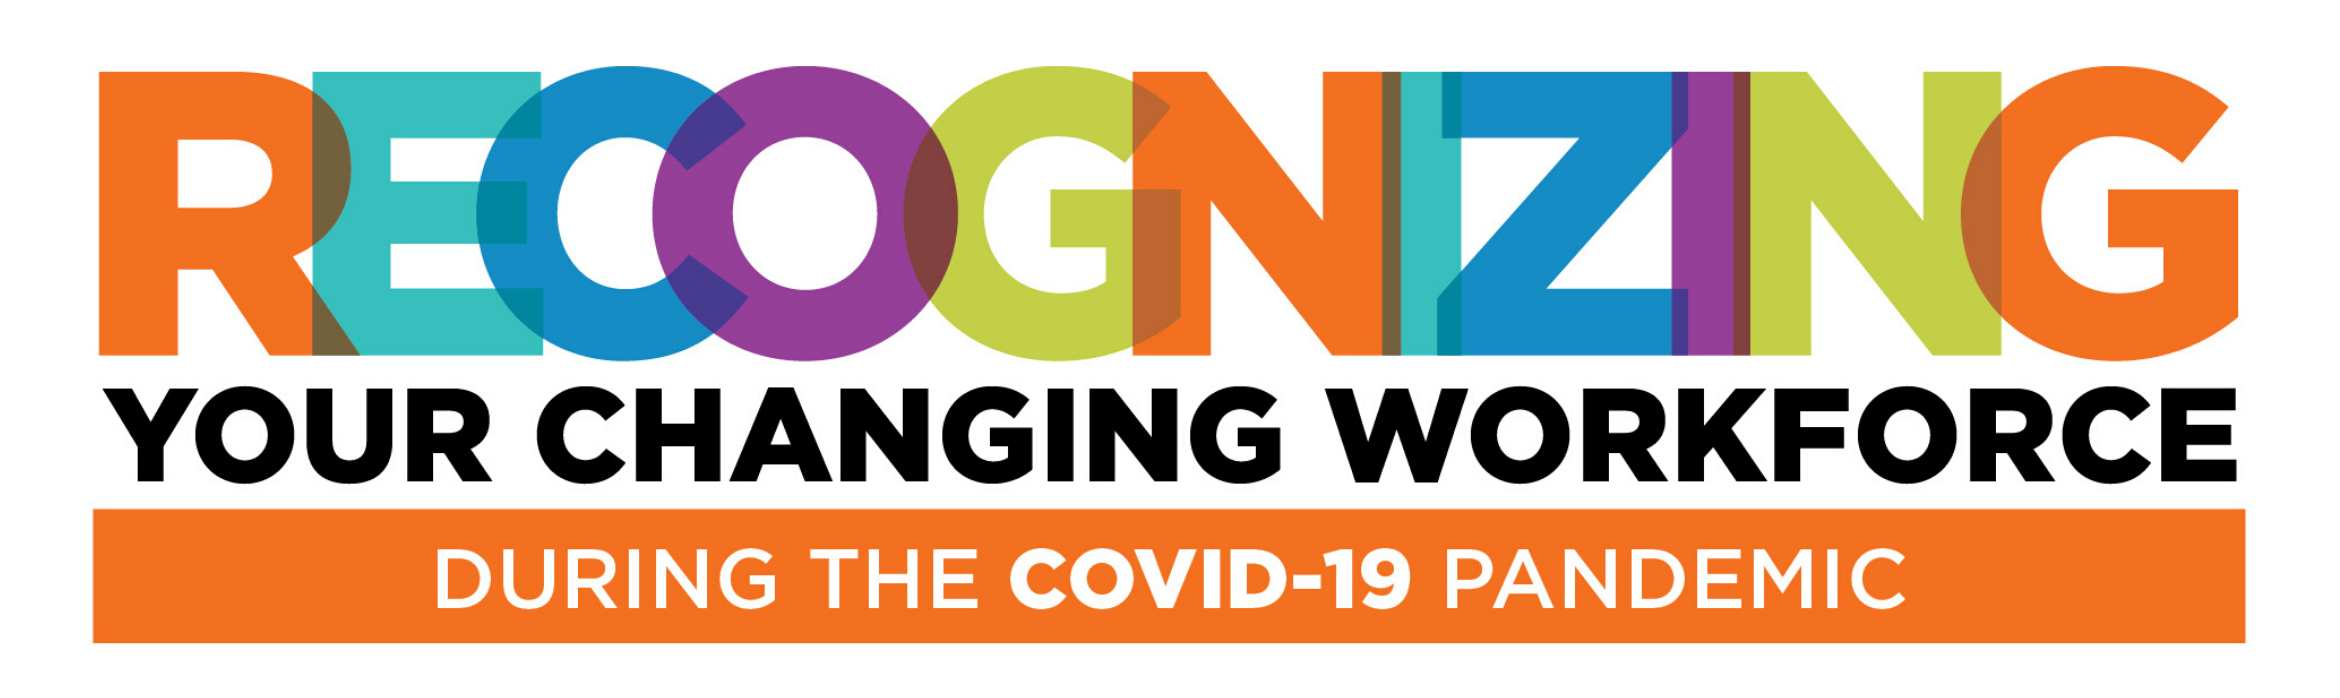 Recognizing Your Changing Workforce During the COVID-19 Pandemic